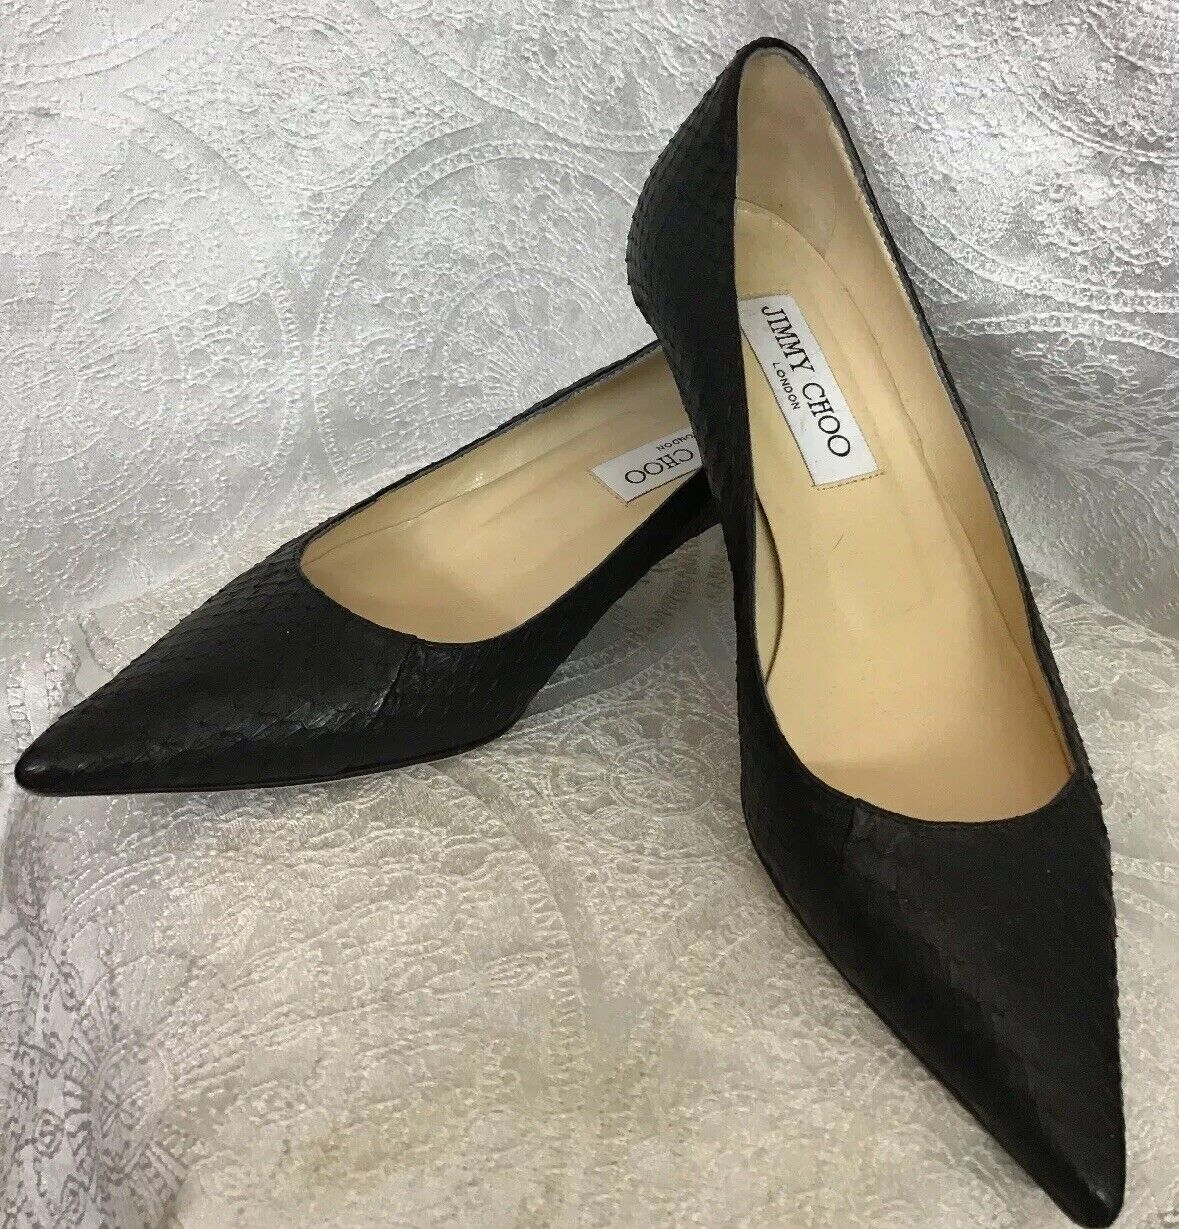 Jimmy Choo shoes Kitten Heel Black Snake Pointed Toe Size 36